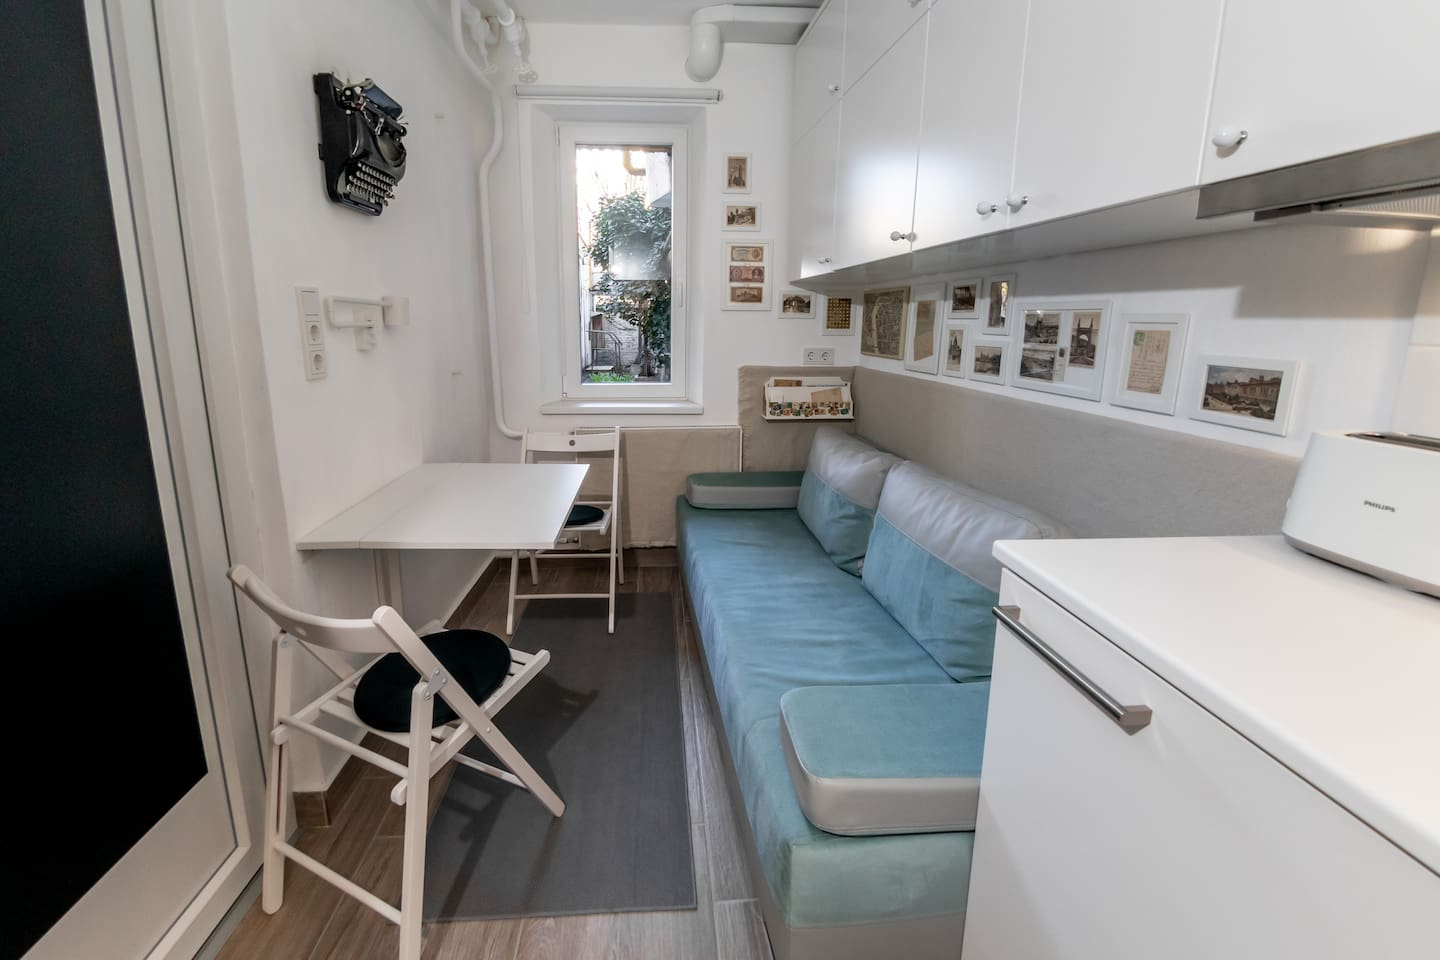 The whole apartment is just ❗️ 8 SQUARE METERS ❗️ so this is a very very tiny flat.